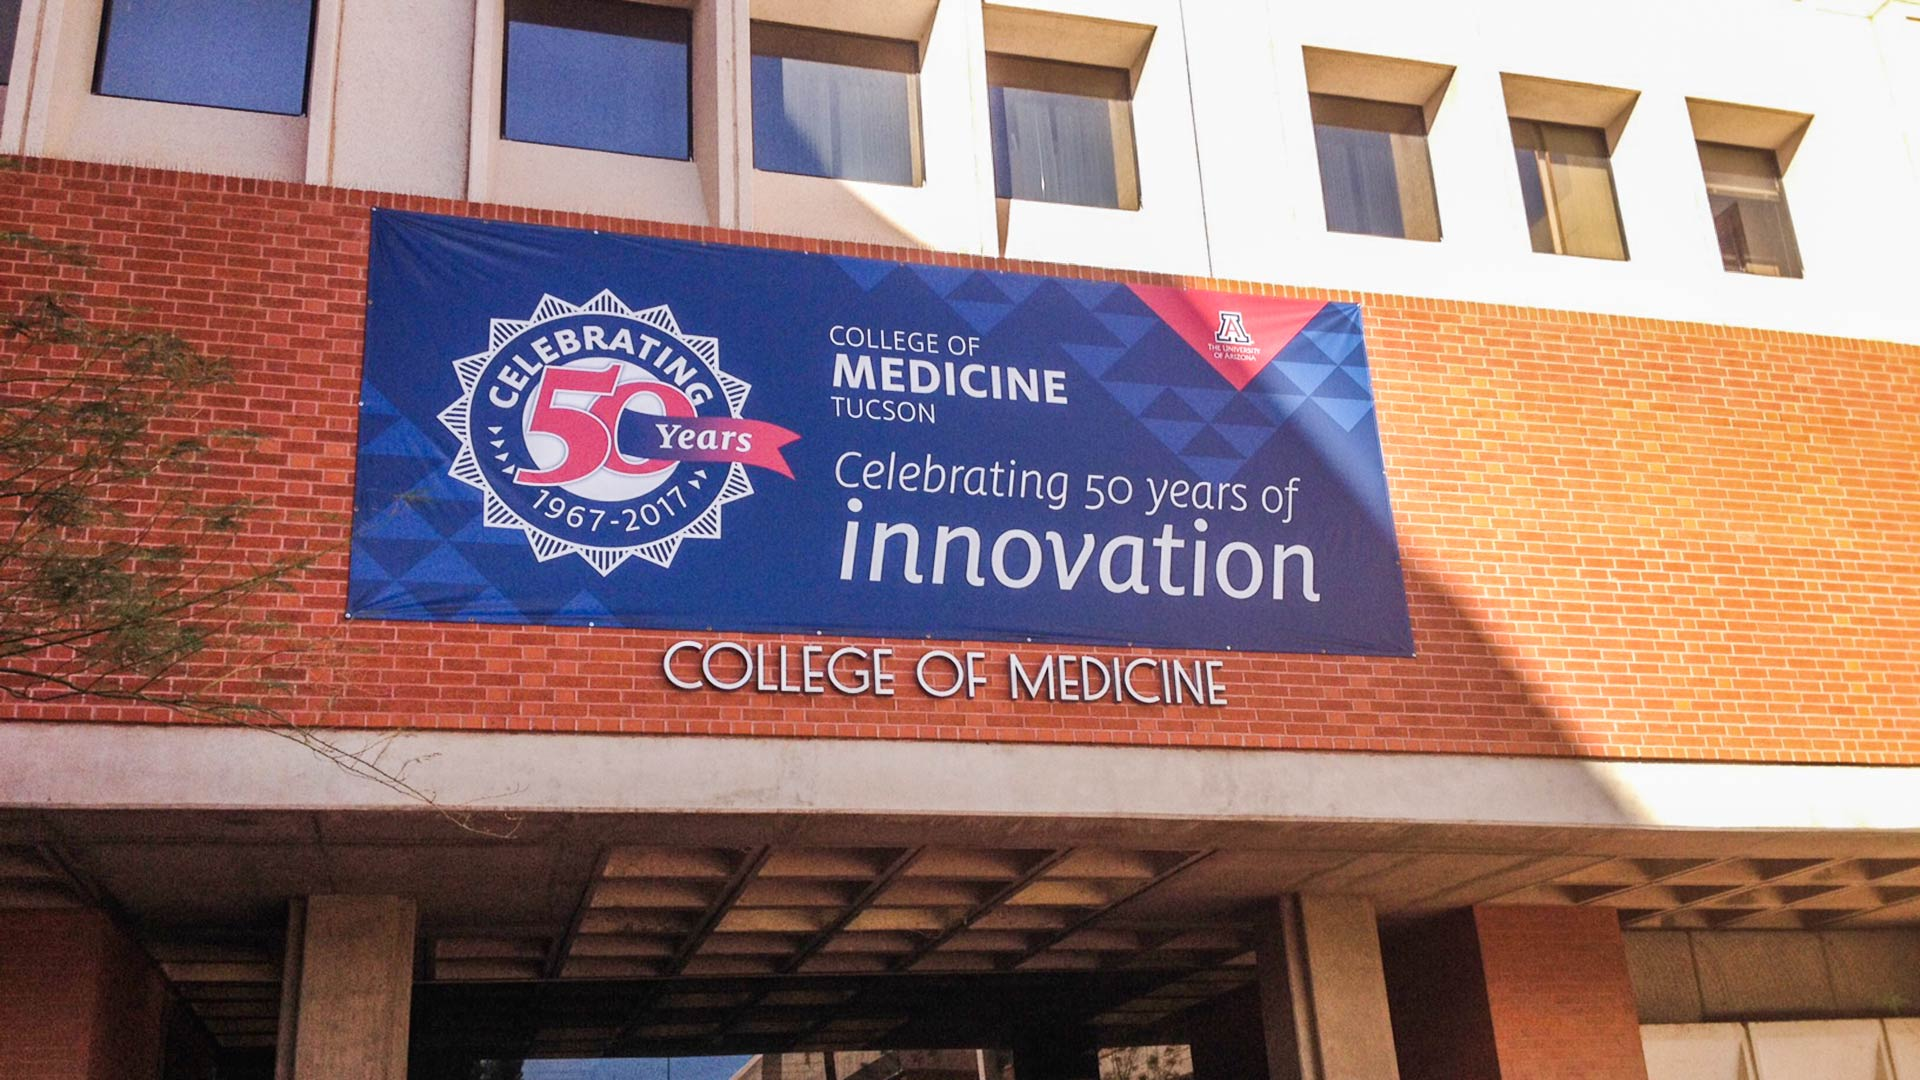 University of Arizona College of Medicine.